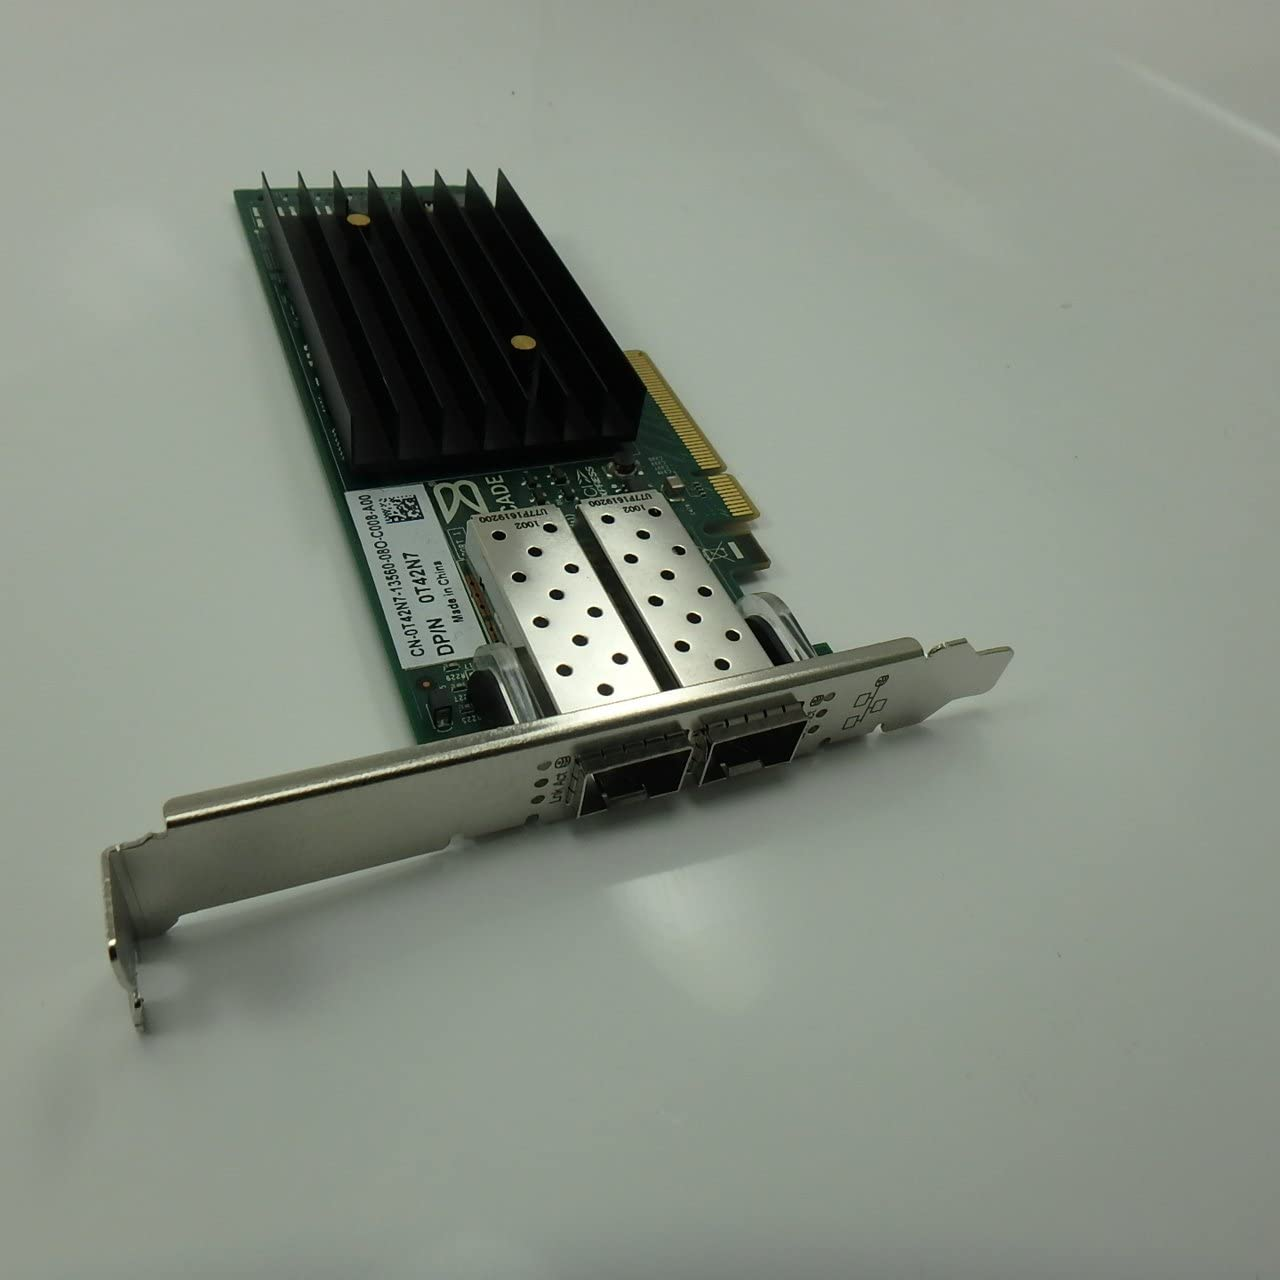 DELL T42N7DELL 10GB 1020 CAN PCI-E 2.0 CONVERGED NETWORK ADAPTER